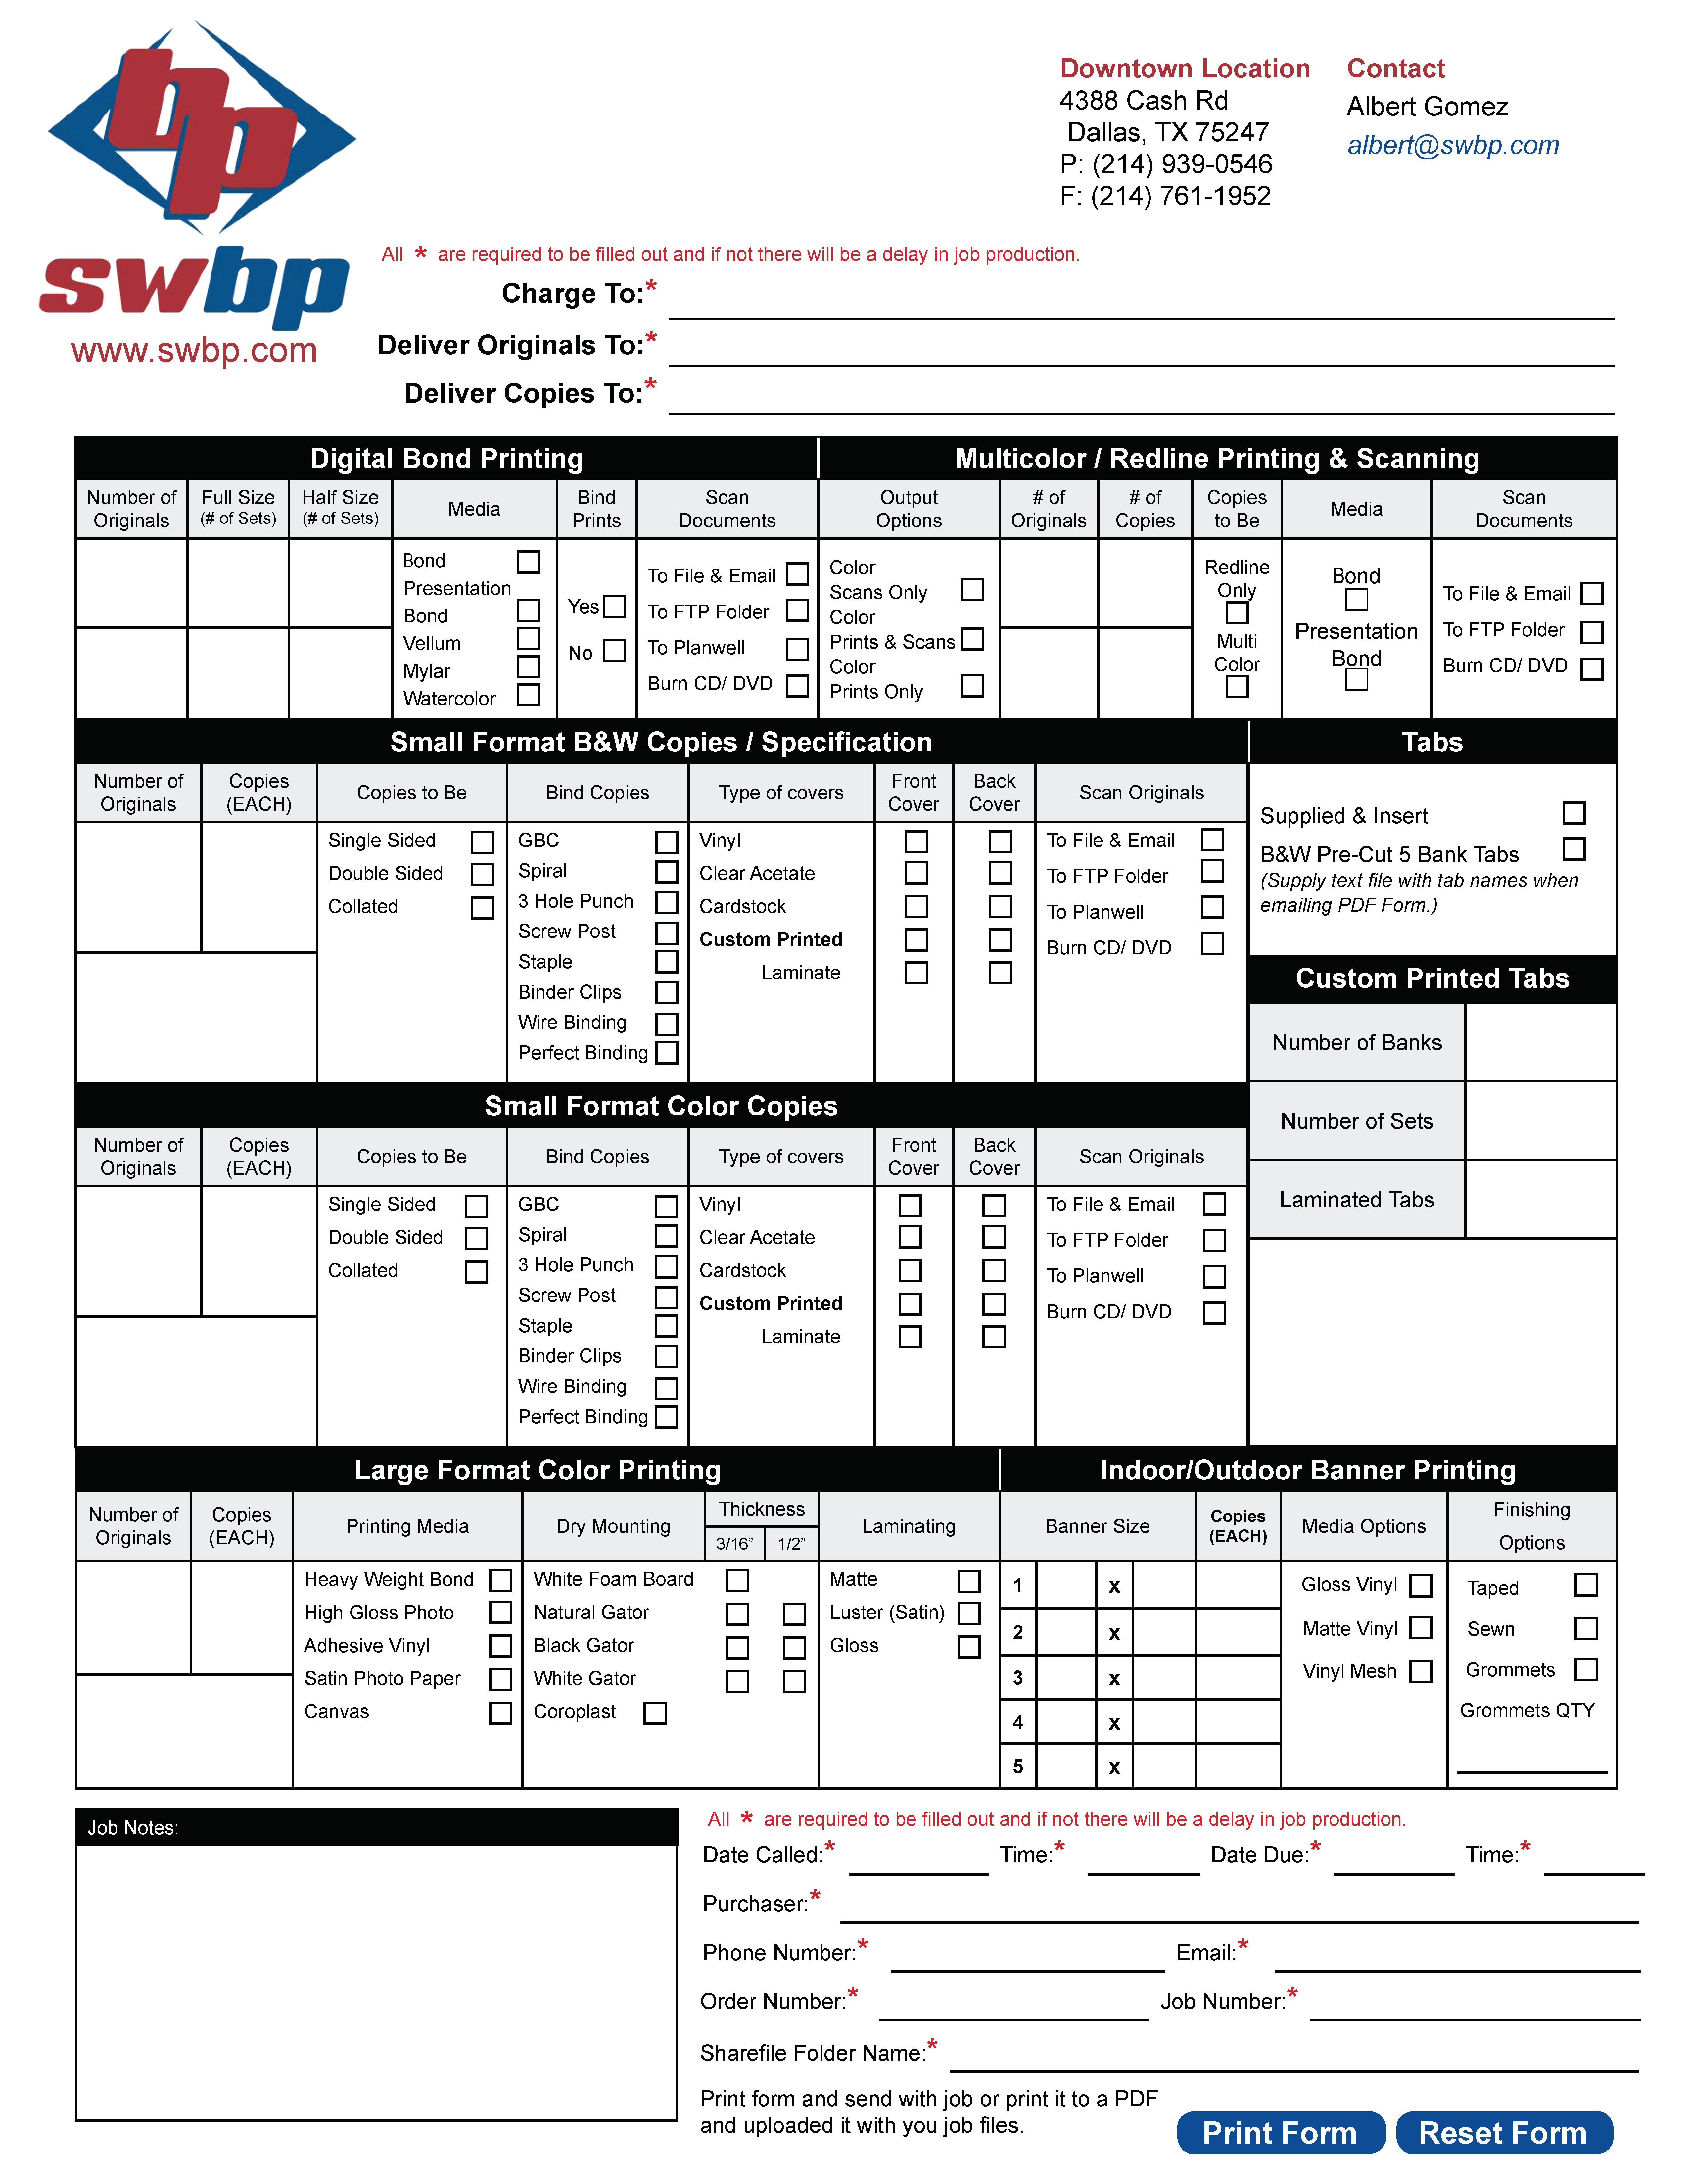 SWBP-Downtown-Online-Form